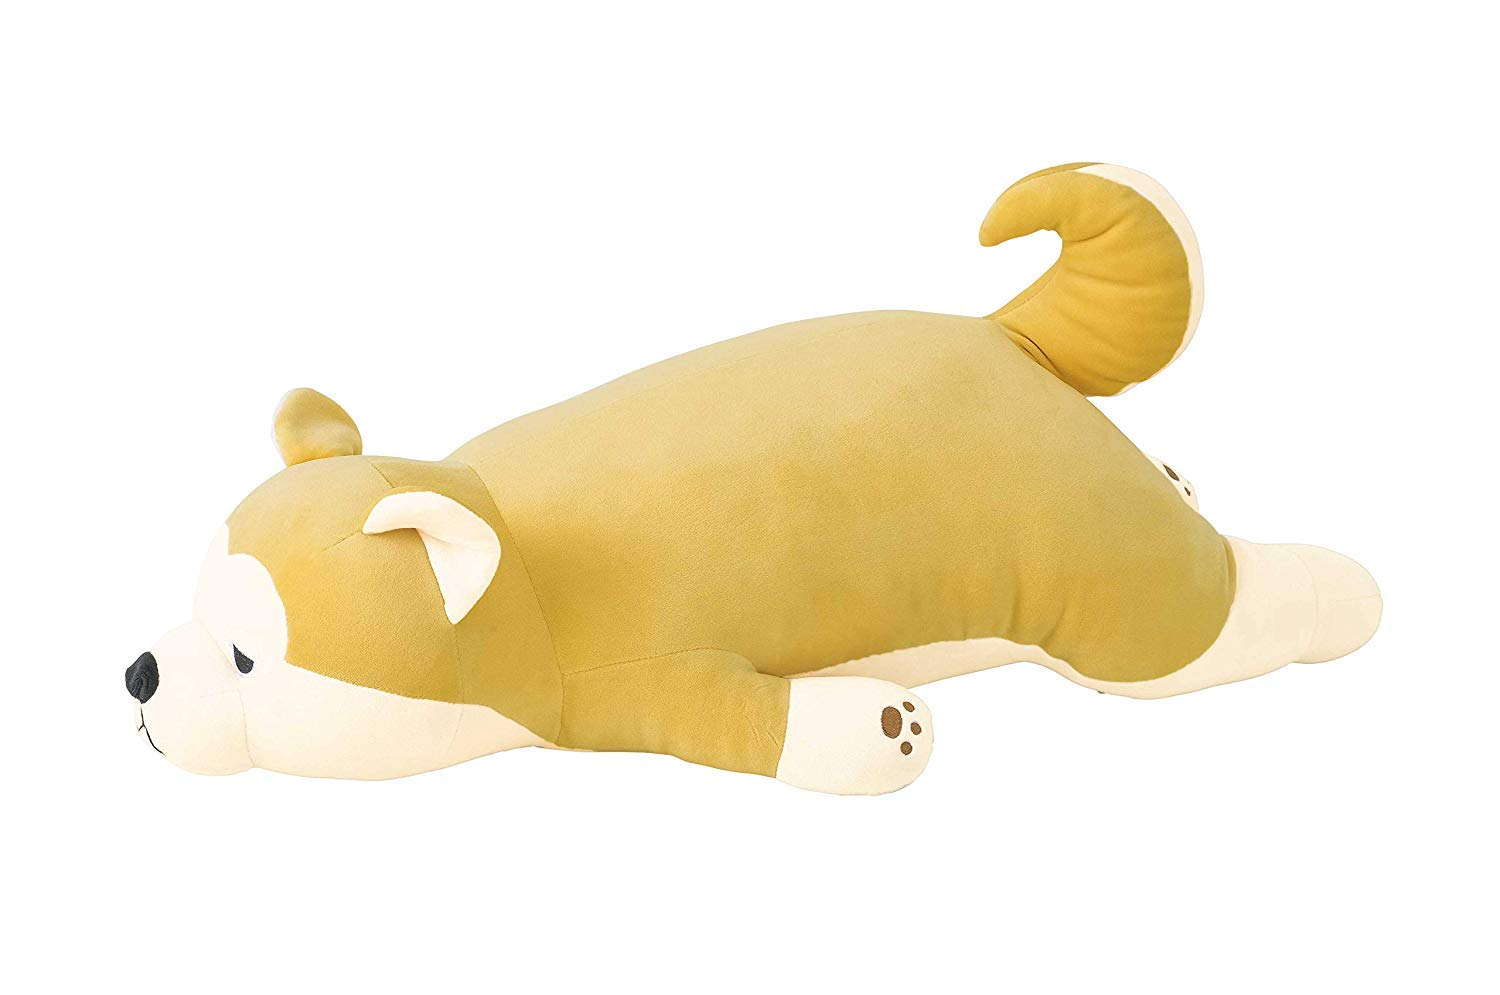 Livheart Akita-Inu Premium Nemu Nemu Sleepy Head Animals Body Pillow Plush Famous Yellow-Beige Hachi Dog 'Masao' Size L (26''x12''x7'') Japan Import 58208-42 Huggable Super Soft Stuffed